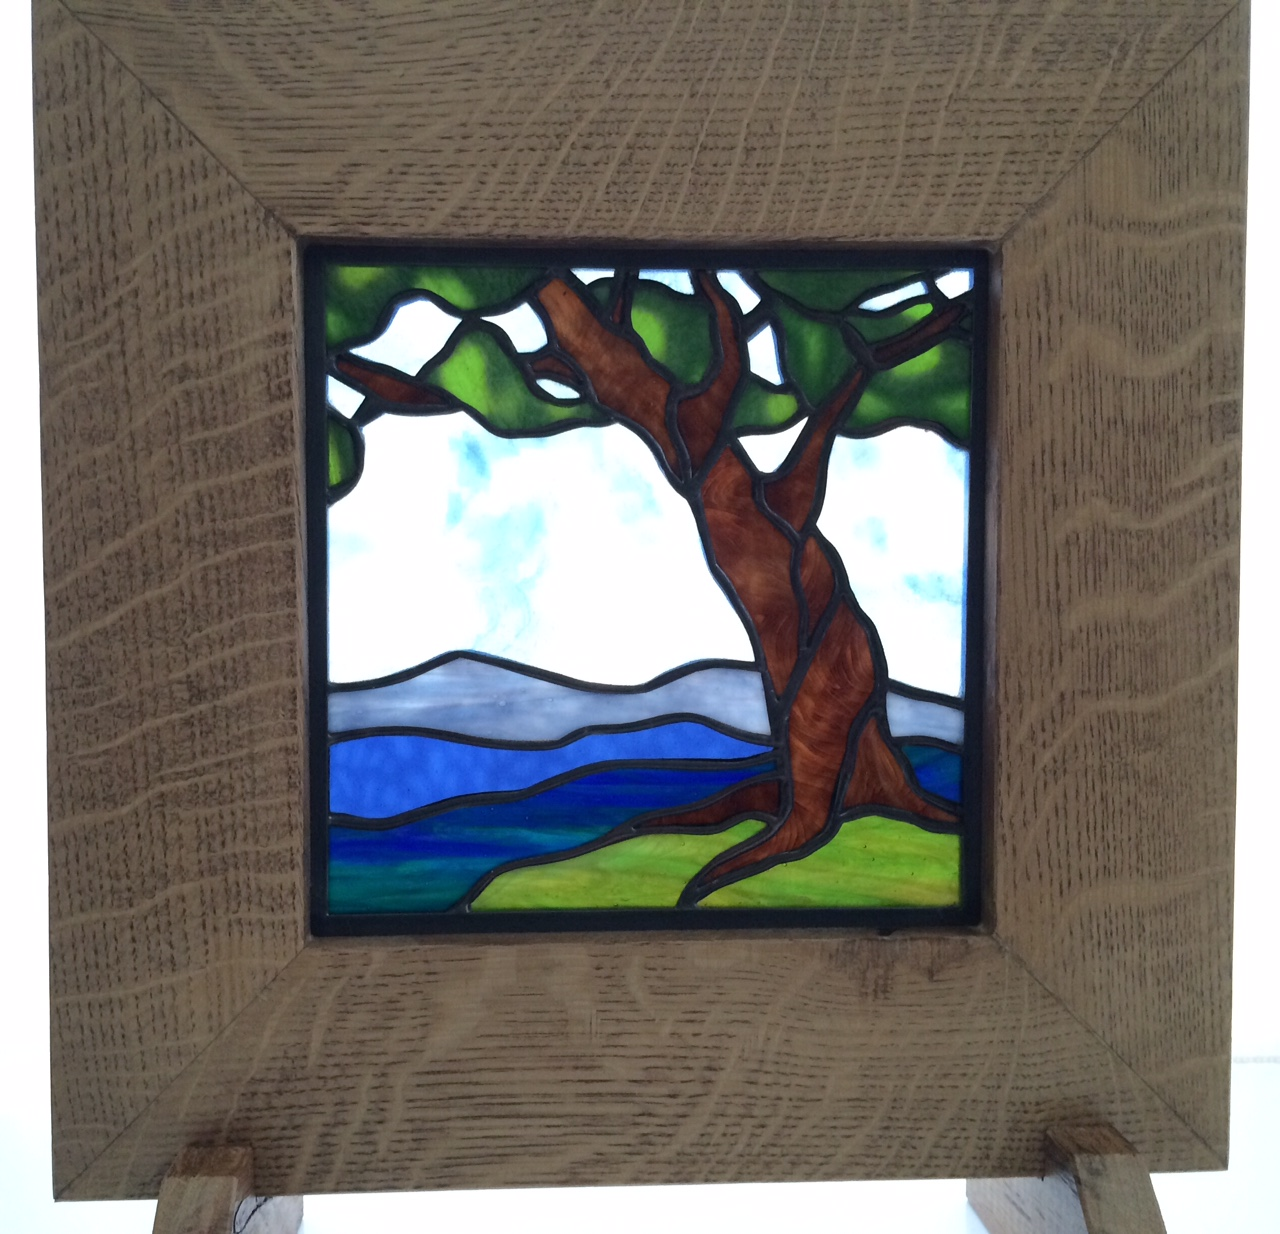 """LITTLE TREE  9"""" Wide x 9"""" High. Withkiln-formed glass used for the sky. $195.00 + Shipping & Handling  Fits 14"""" Oak Frame (pictured). additional $95.00"""